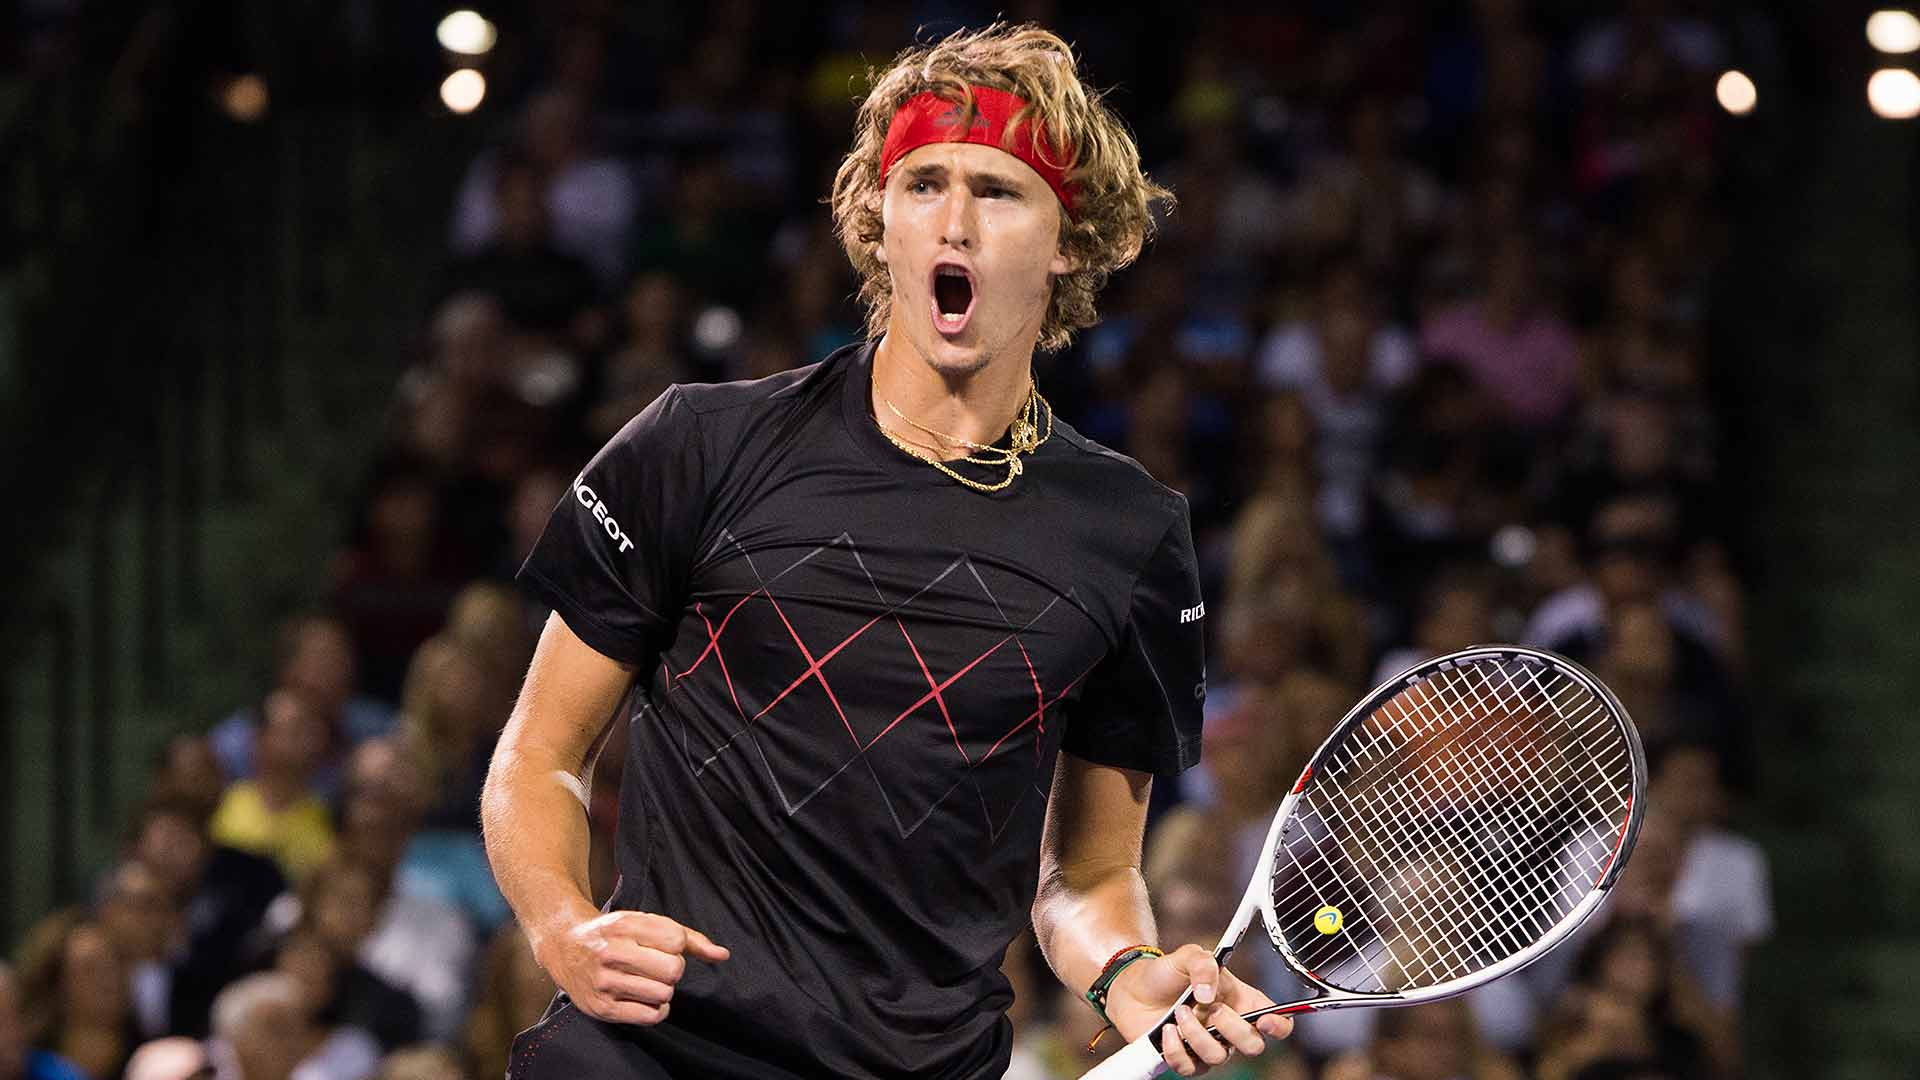 Toni Nadal believes Zverev is better than Rafael Nadal